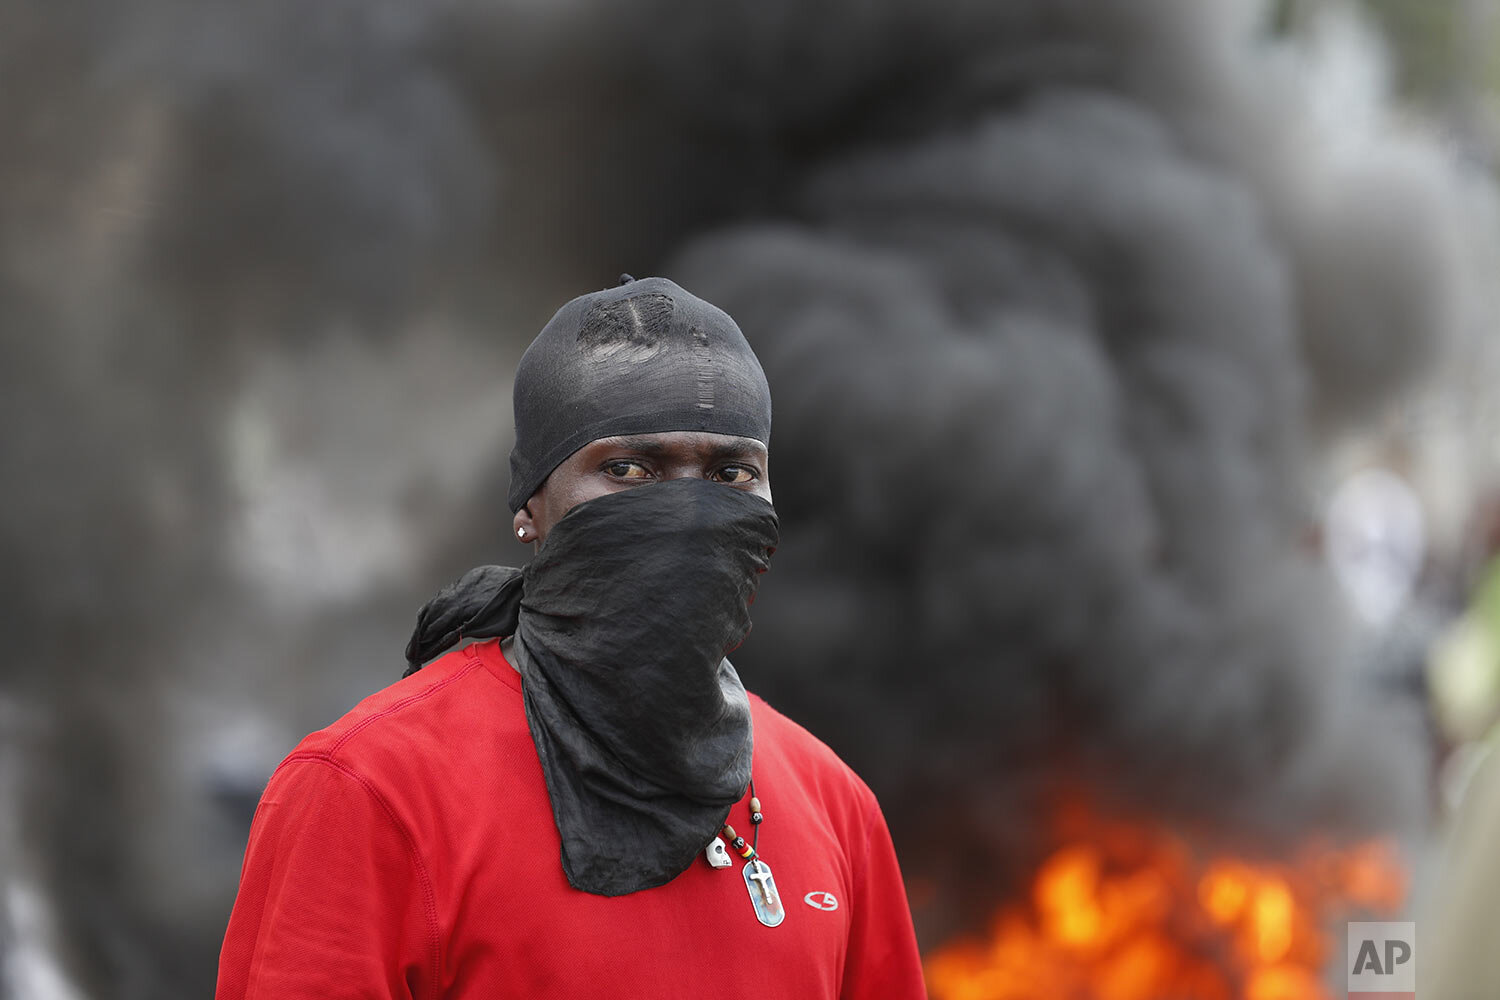 A demonstrator stands in front of a burning barricade during a protest calling for the resignation of President Jovenel Moise, in Port-au-Prince, Haiti, Friday, Oct. 4, 2019. After a two-day respite from the recent protests that have wracked Haiti's capital, opposition leaders urged citizens angry over corruption, gas shortages, and inflation to join them for a massive protest march to the local headquarters of the United Nations. (AP Photo/Rebecca Blackwell)